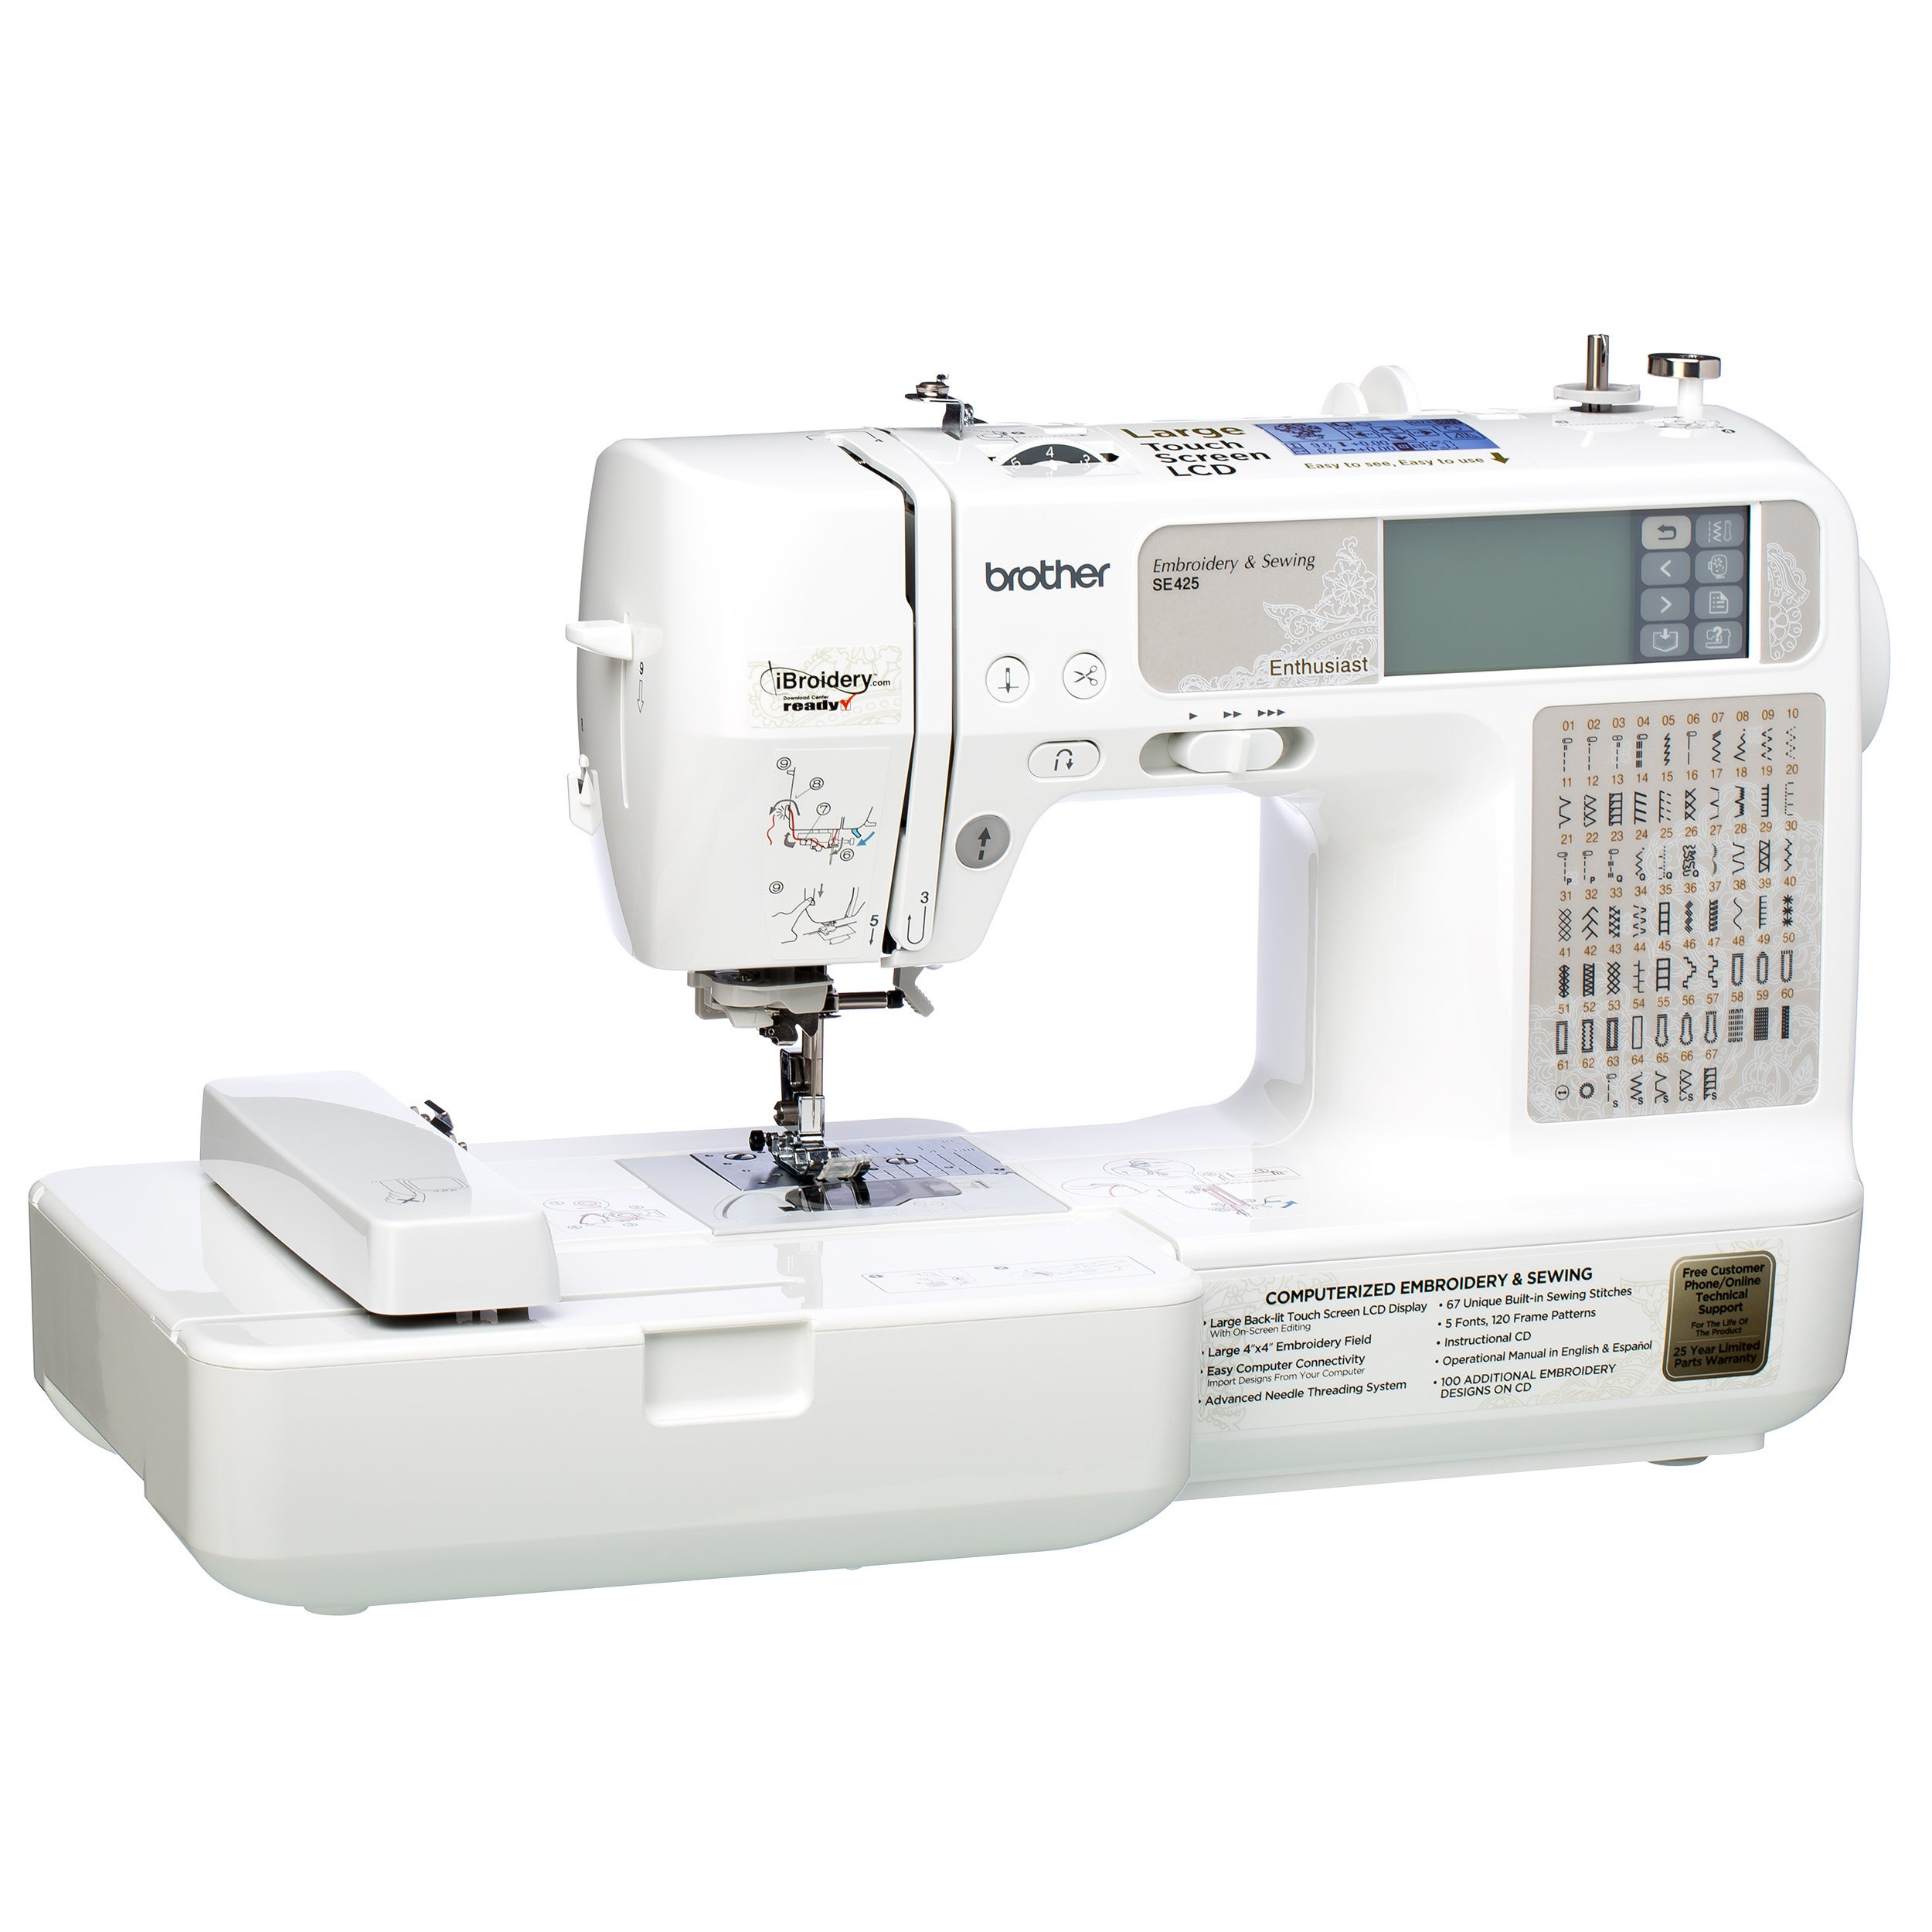 Brother RSE425 Computerized Sewing and Embroidery Machine...